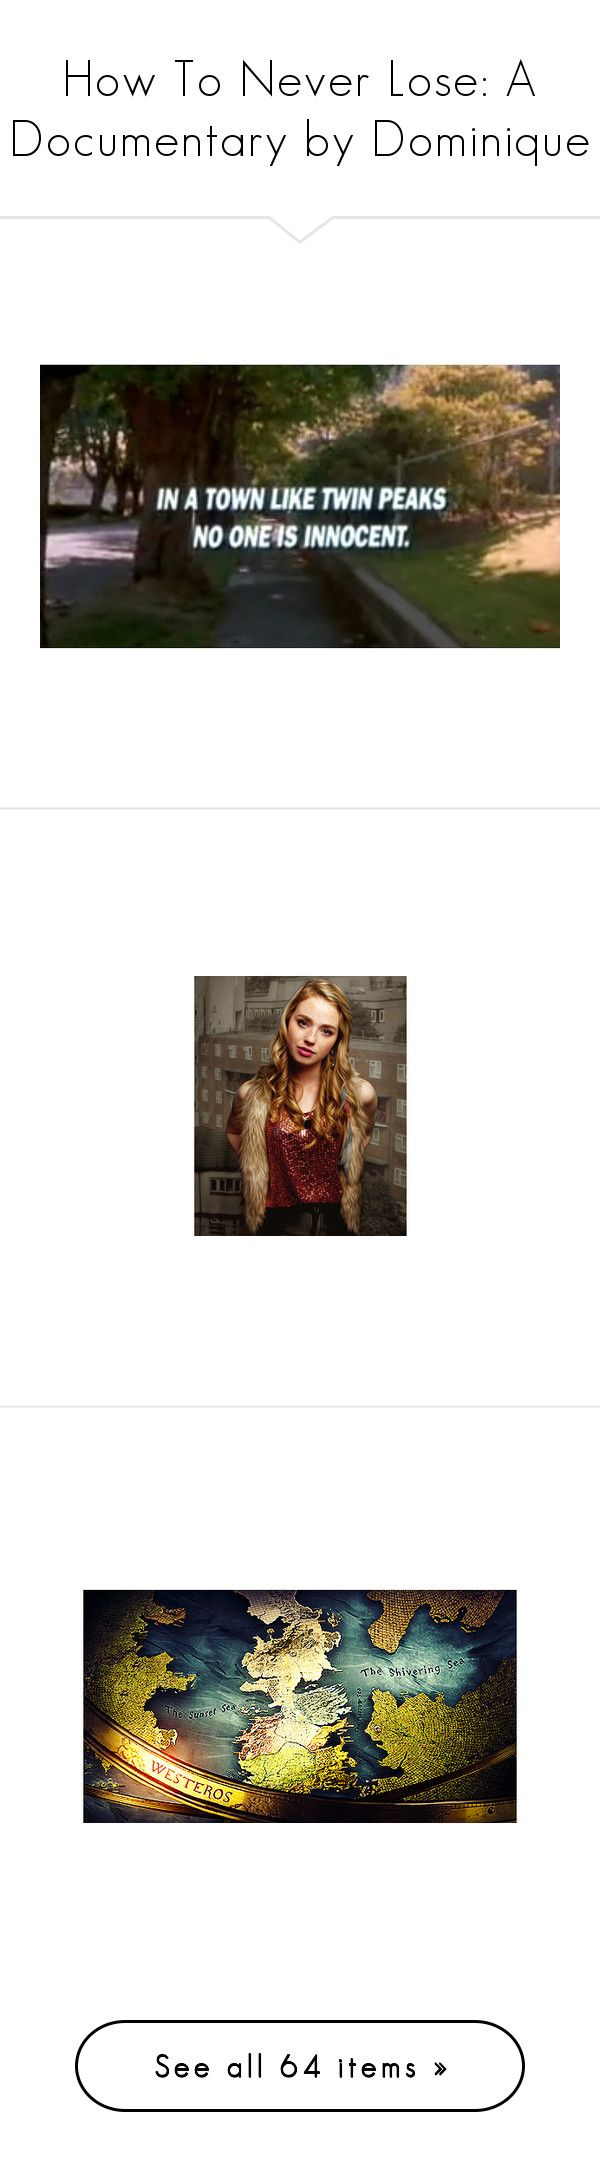 """""""How To Never Lose: A Documentary by Dominique"""" by lecoupdefoudre ❤ liked on Polyvore featuring home, home decor, freya mavor, mavor, game of thrones, backgrounds, photo, pictures, photos and people"""